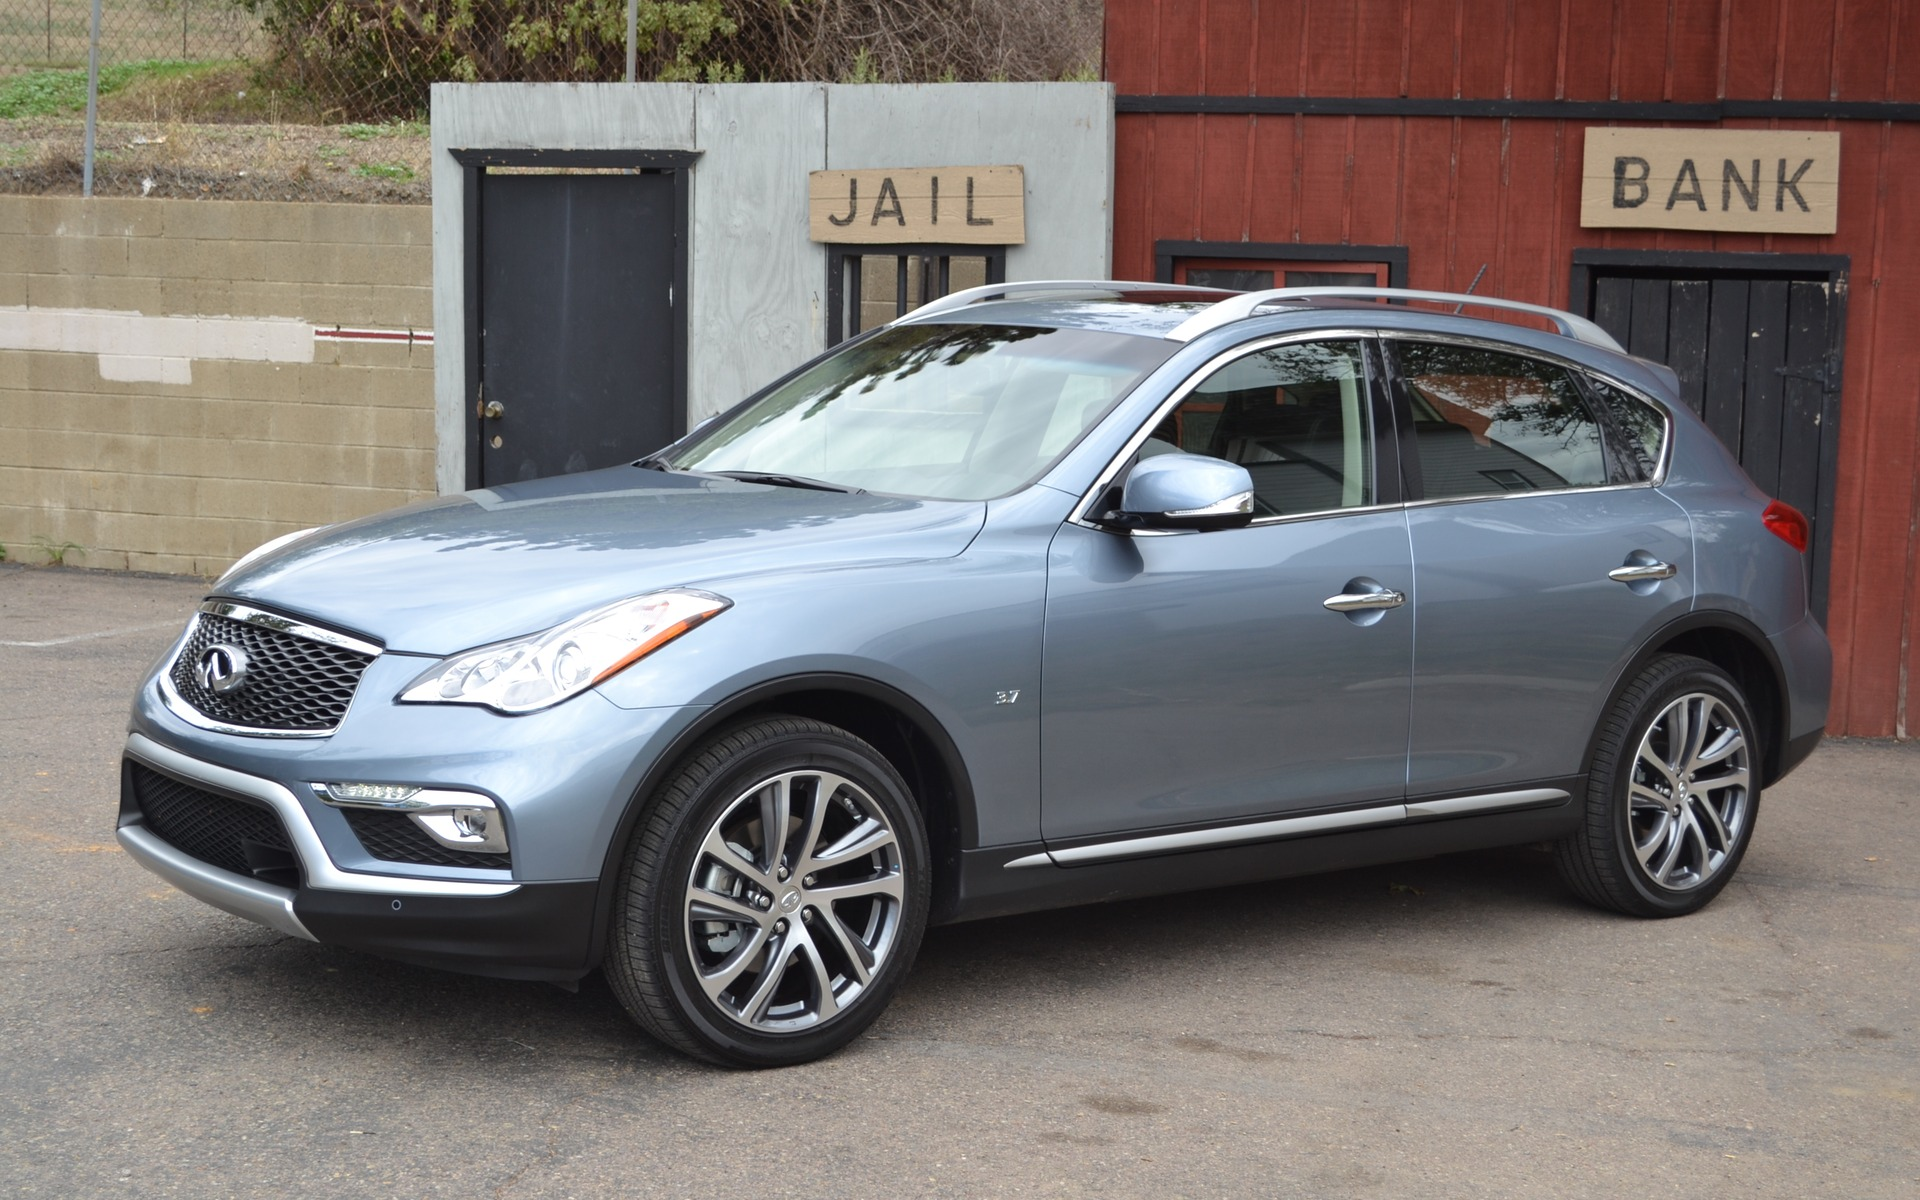 The QX50 will undergo a slight makeover this year.